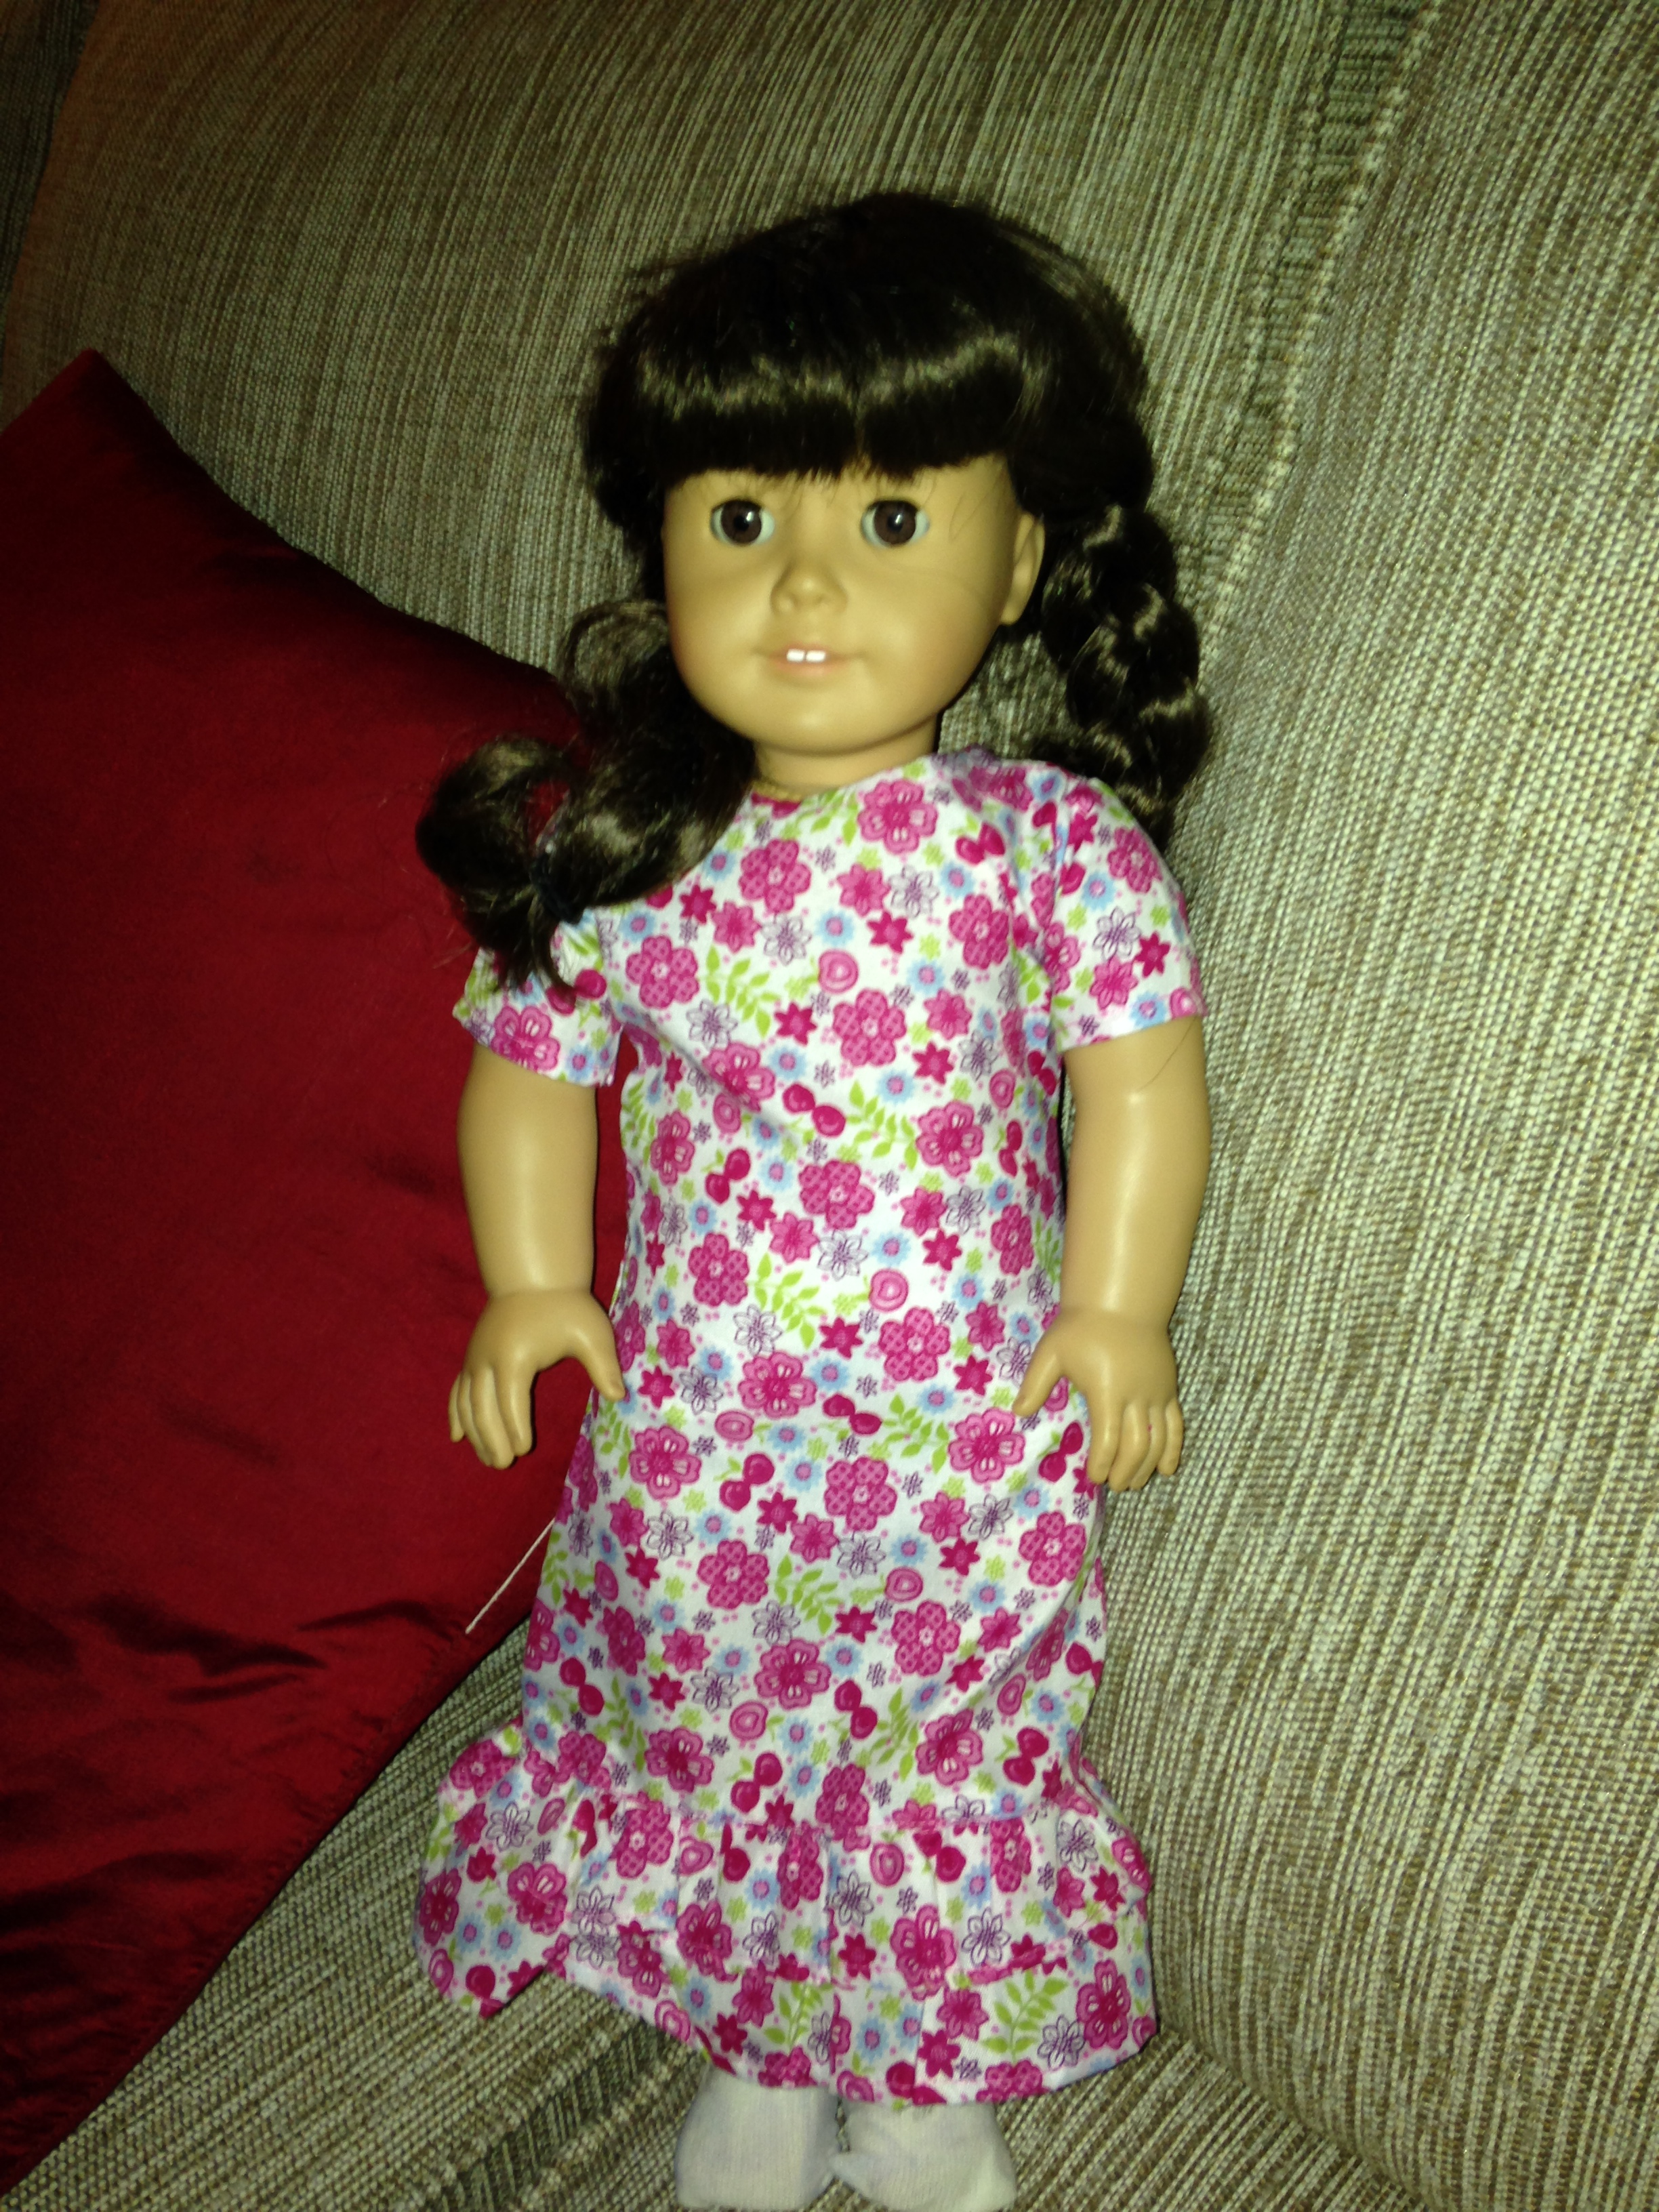 Doll Clothes Superstore Review: American Girl! - Tasteful Space